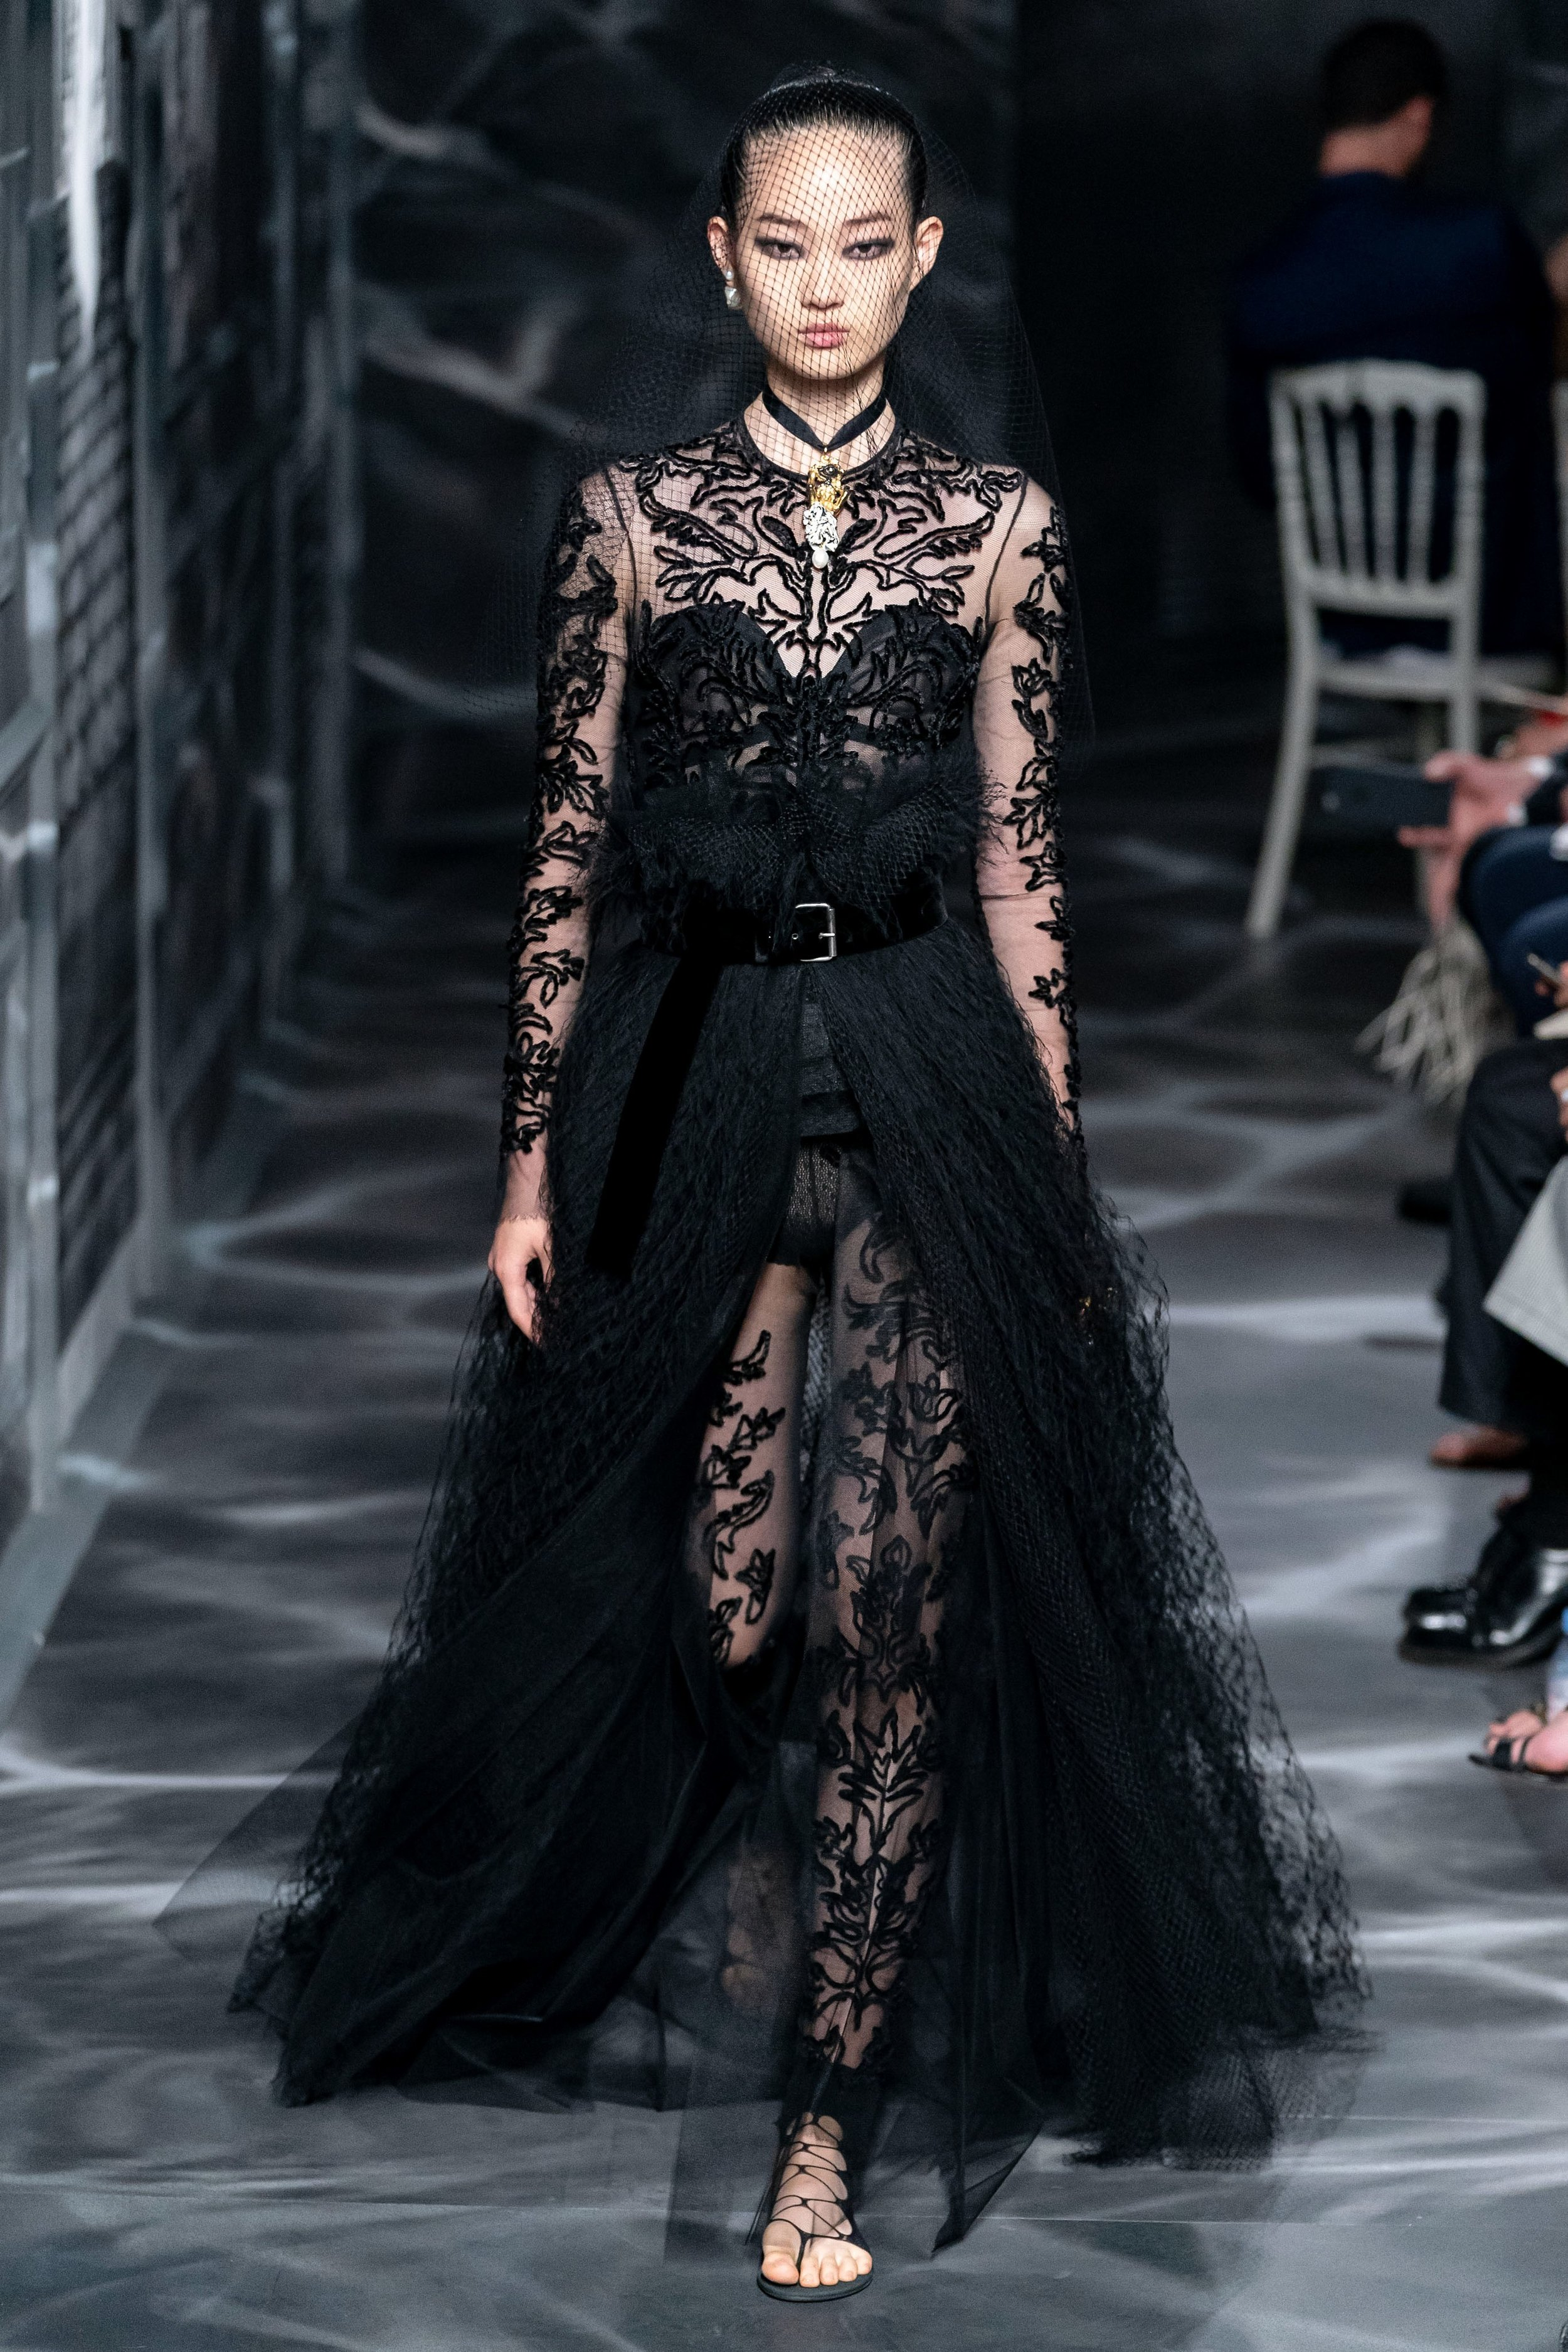 1/4 Christian Dior Fall Couture 19: Favorite Looks